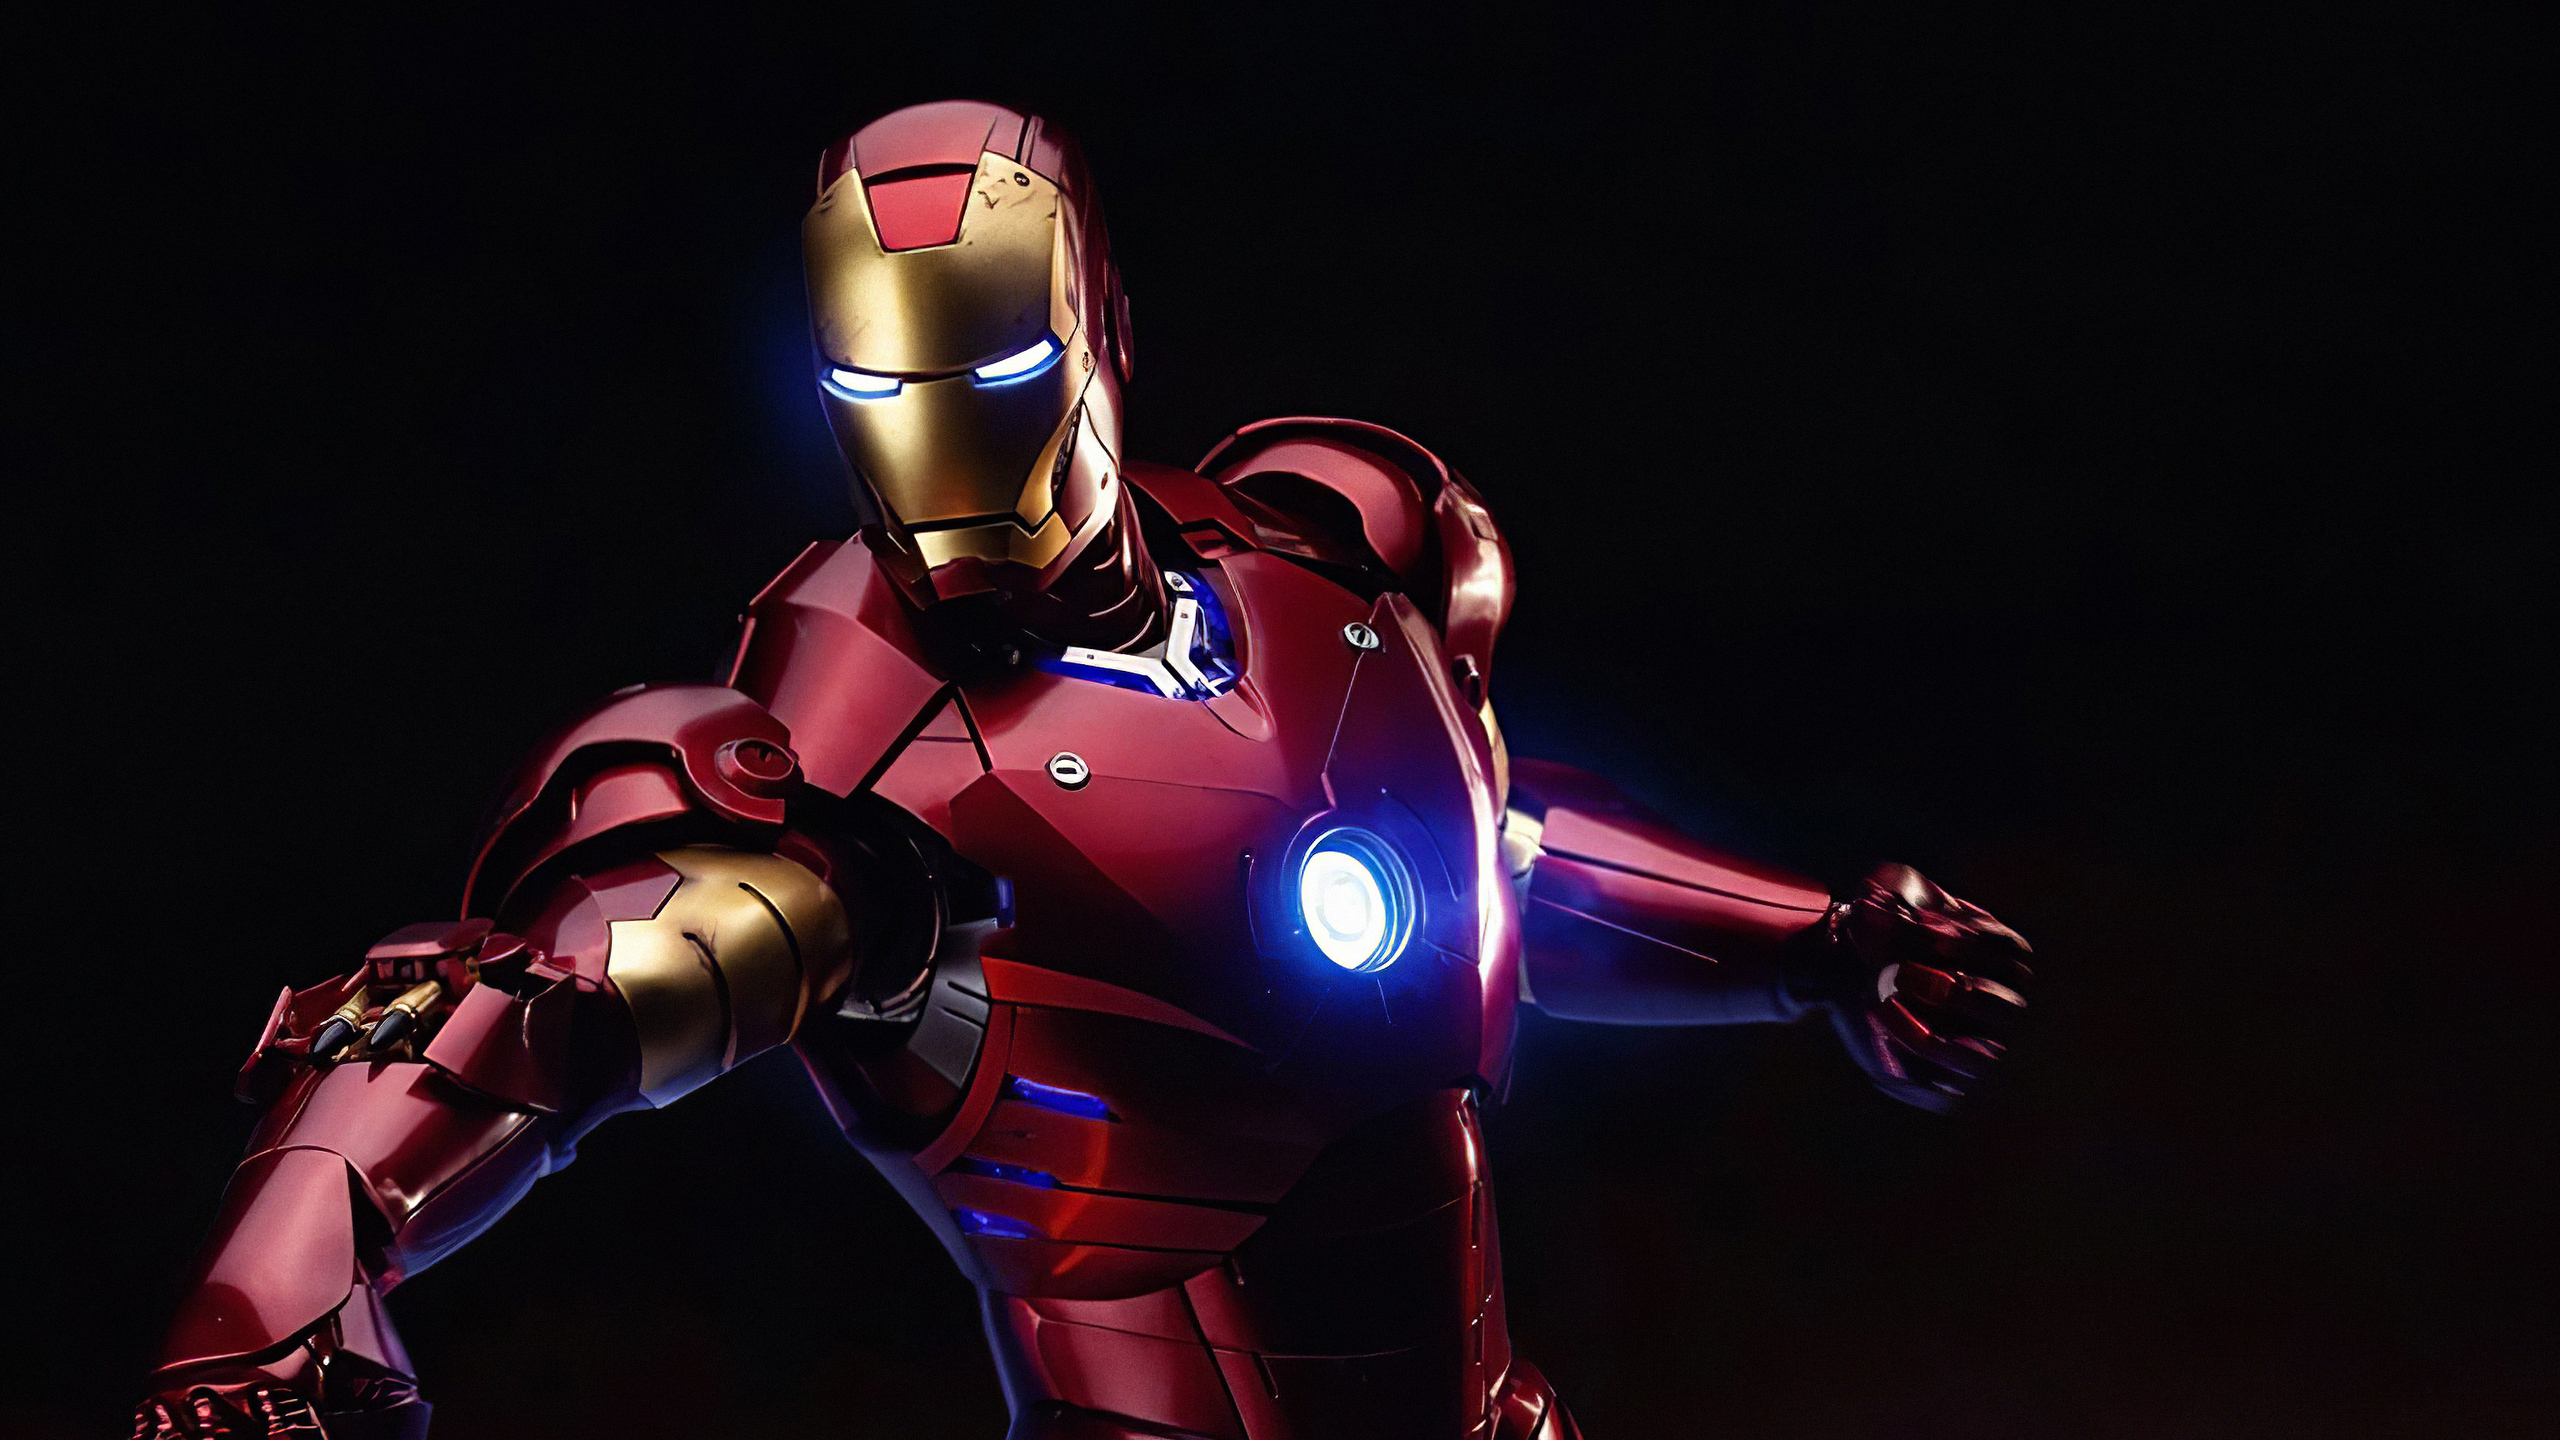 2560x1440 Iron Man On 1440p Resolution Hd 4k Wallpapers Images Backgrounds Photos And Pictures